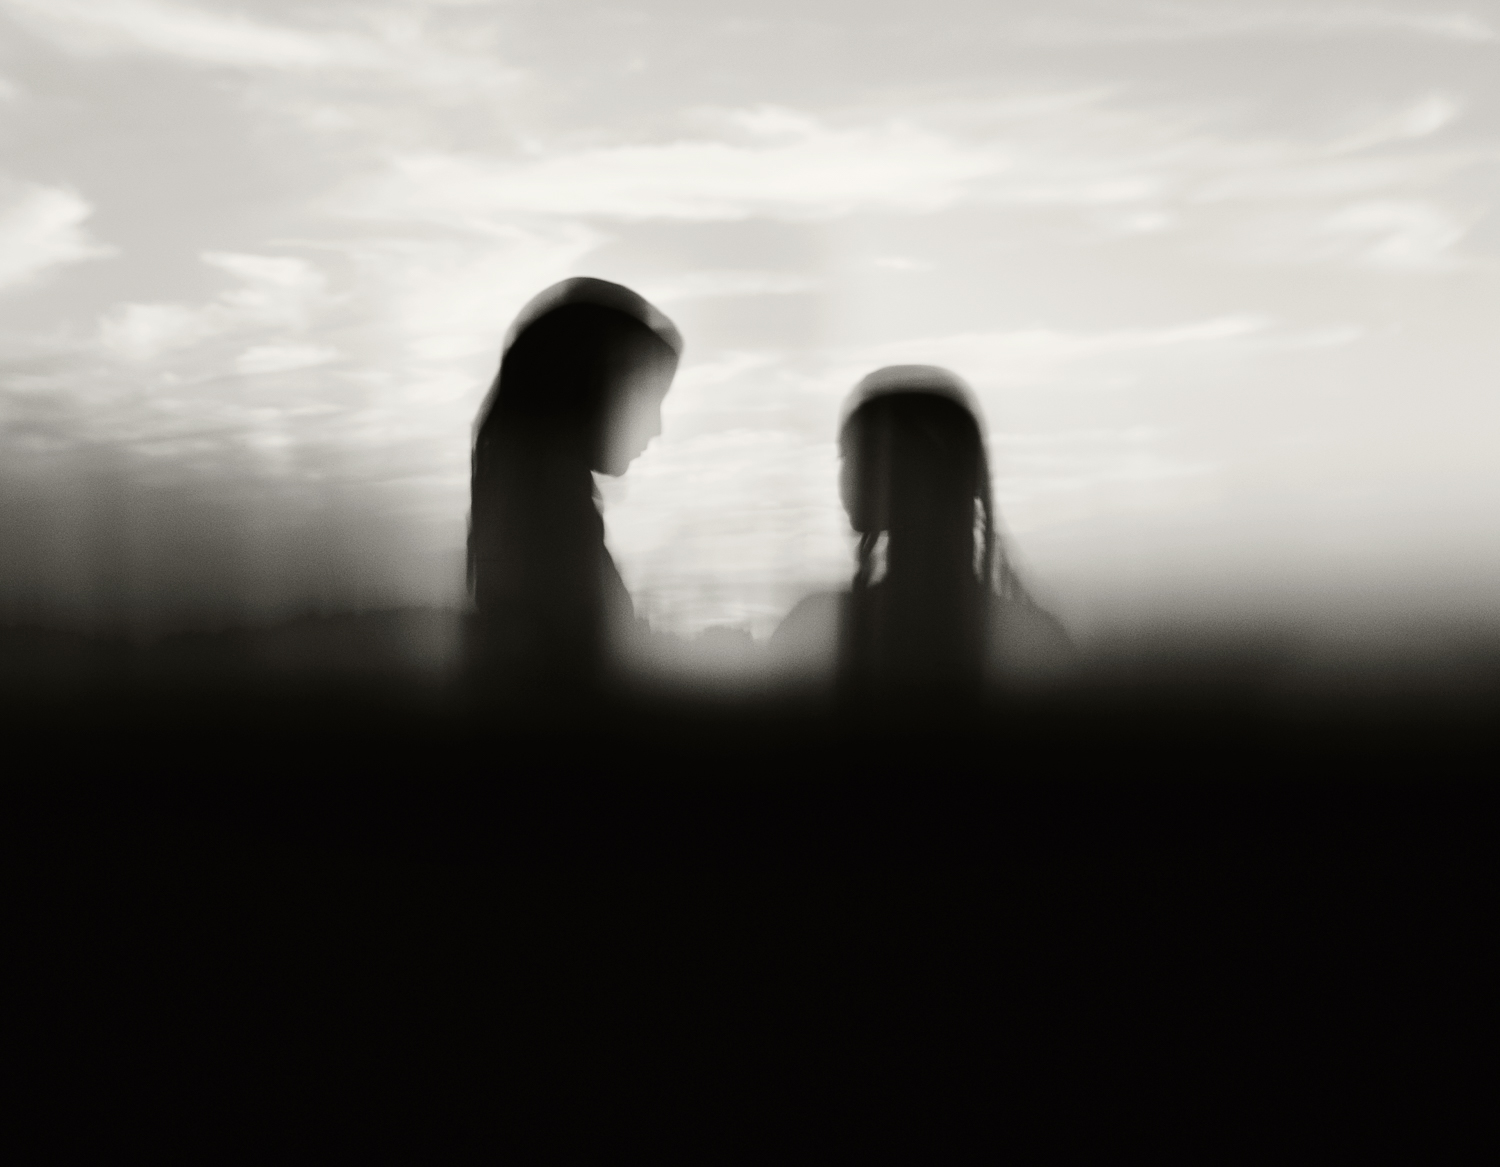 Sky + Ellie, Clitherall, 2012